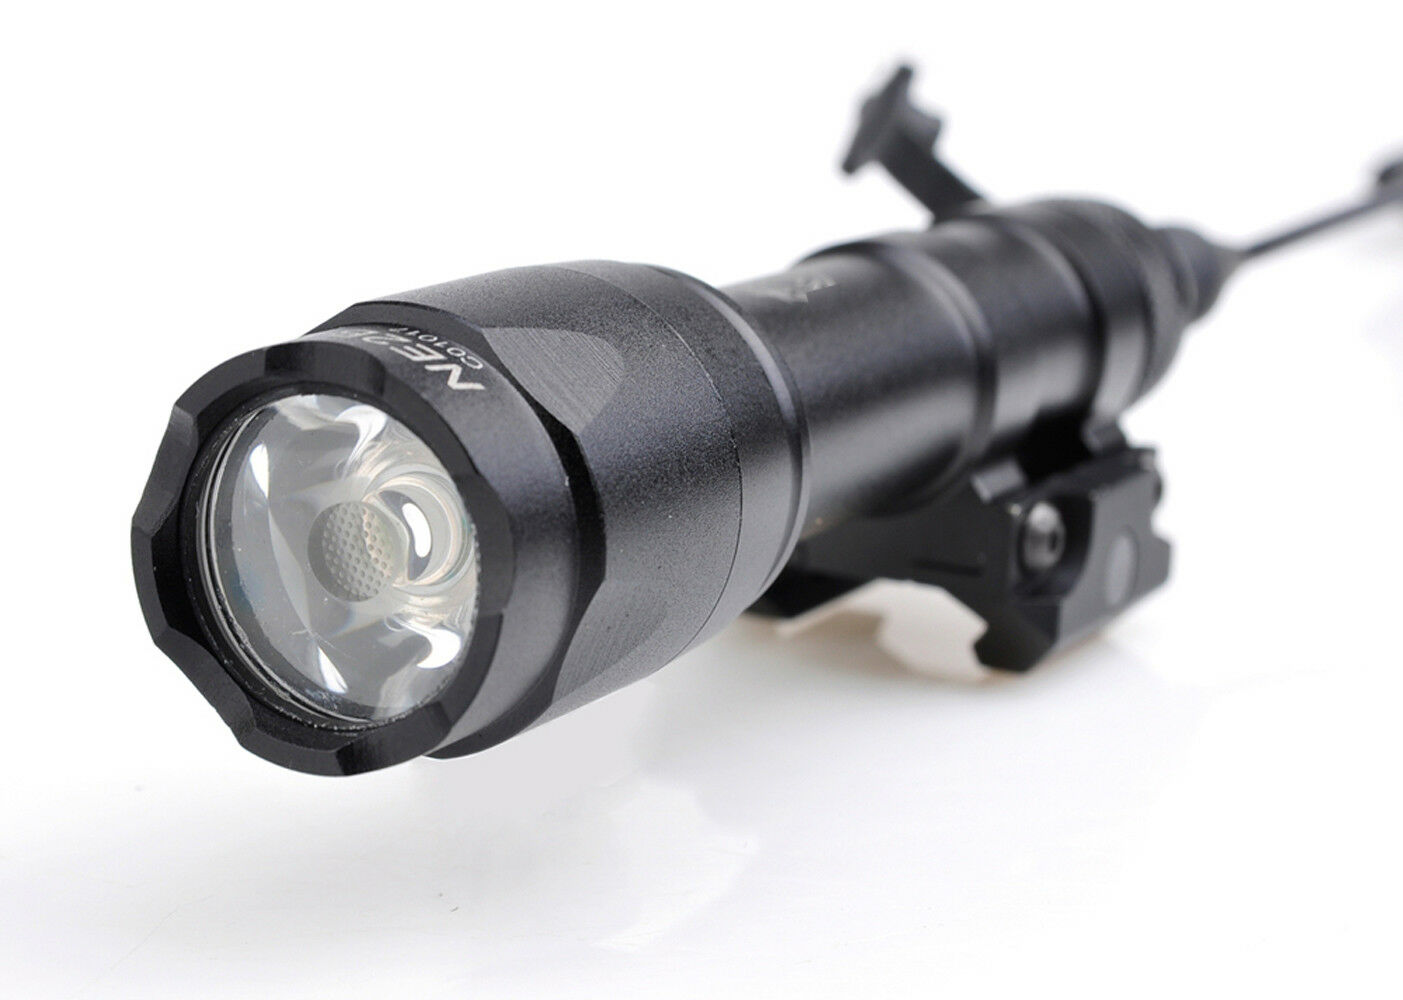 M600C Tactical Light LED Scout  Light Integrated Guideway Rail Mount Weapon Light  with 60% off discount